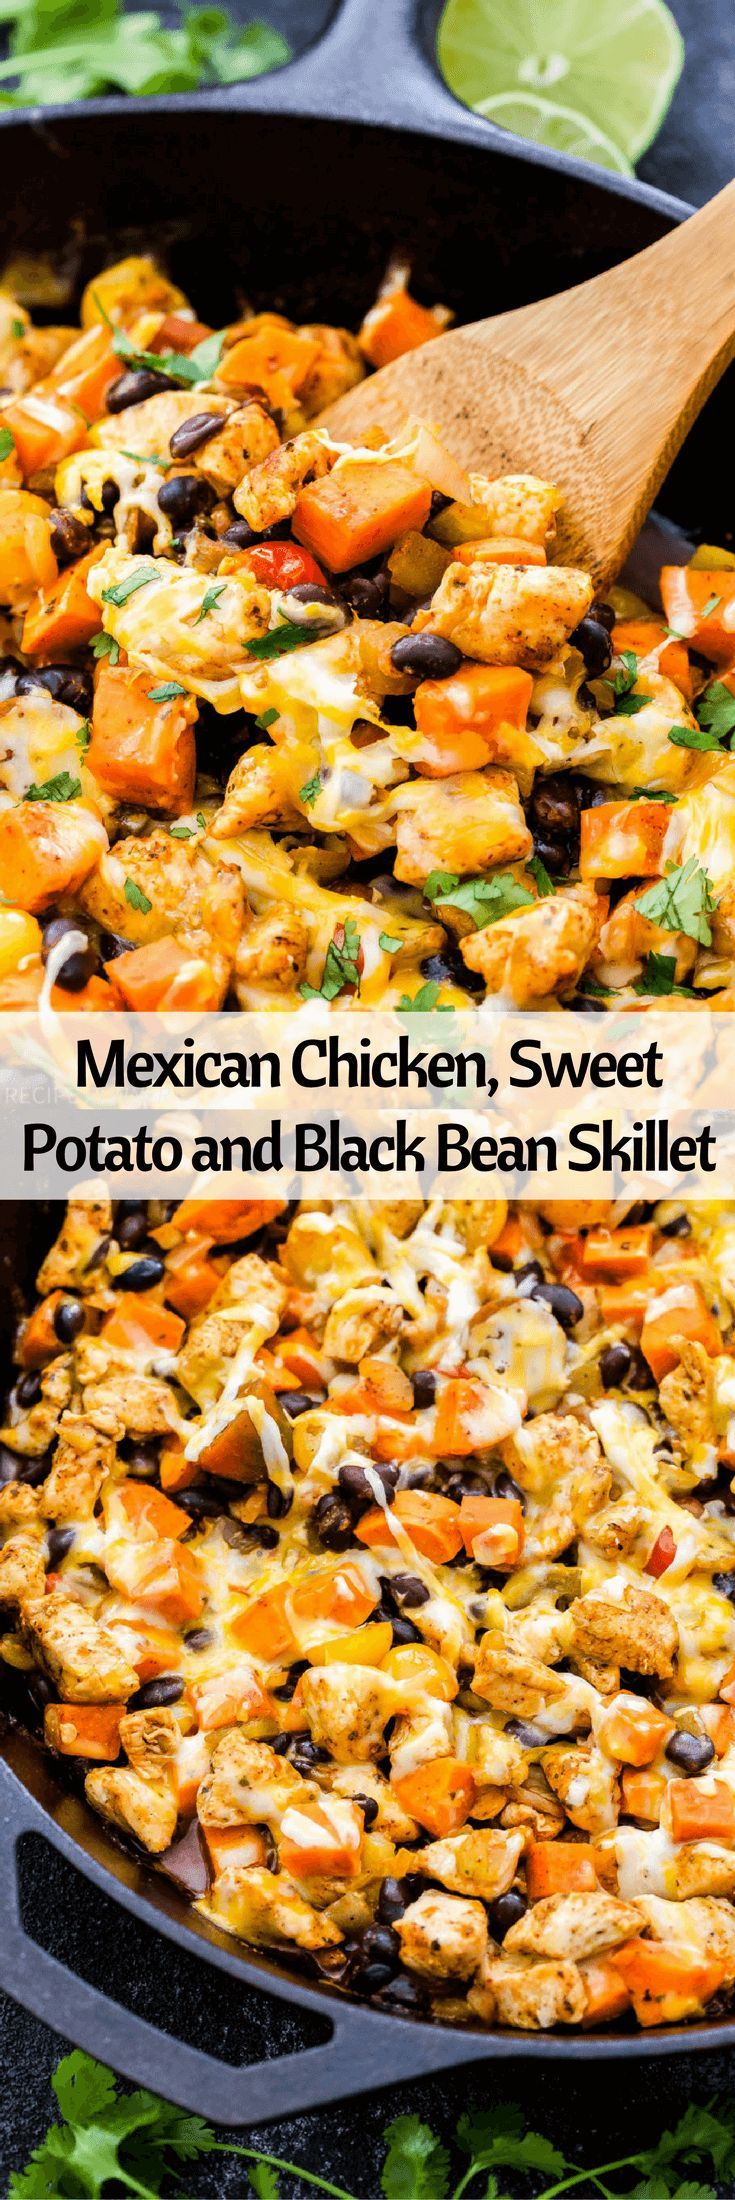 4686 best mouthwatering recipes you cant get enough of images on an easy dinner all made in one skillet mexican chicken sweet potato and black forumfinder Choice Image